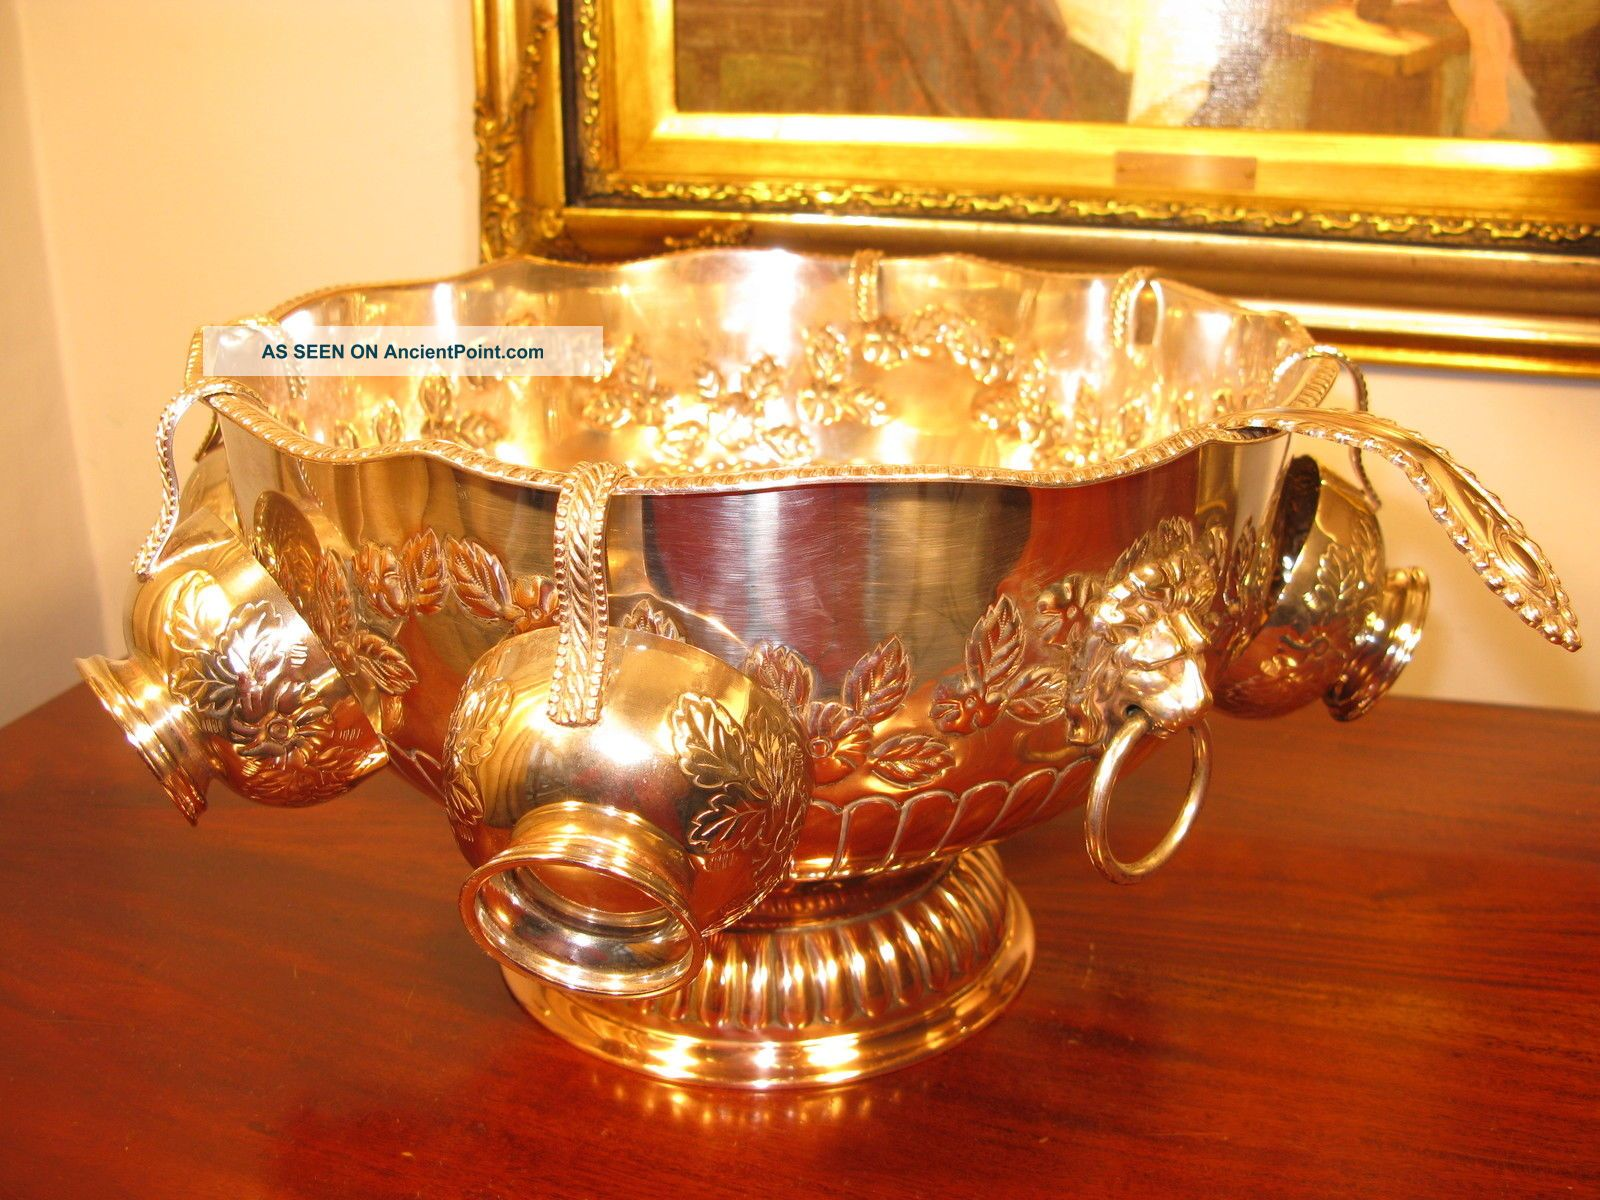 Vintage Antique Edwardian Style Large Ornate Silver Plate Punch Bowl Cups Ladle Other Antique Silverplate photo